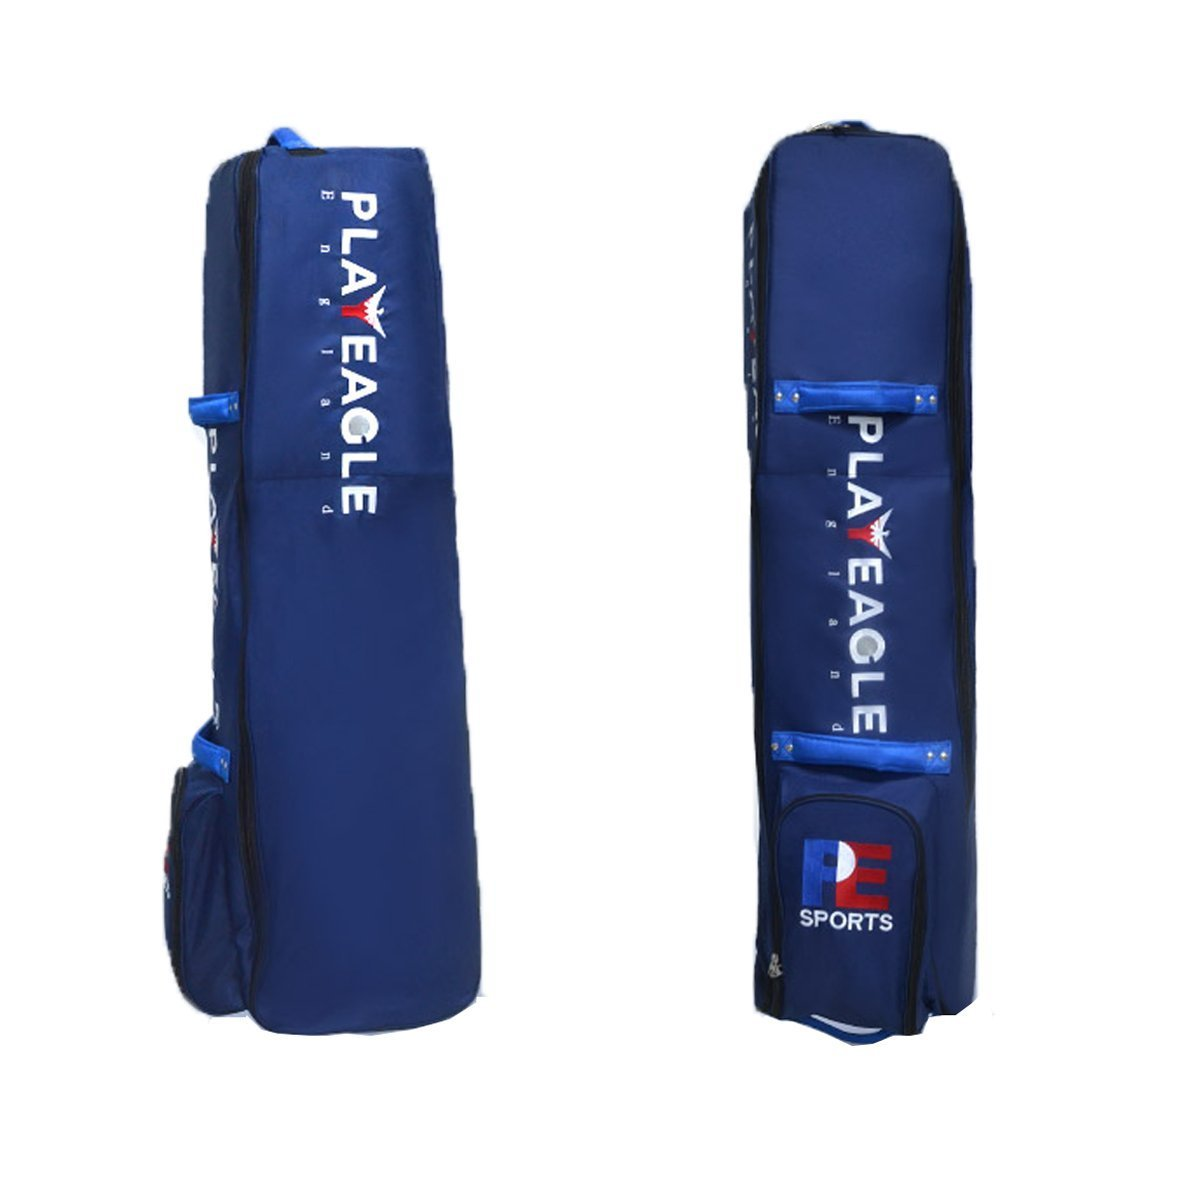 PLAYEAGLE Nylon Golf Travel Cover Bag with Wheels Thickening Pad Golf Holiday Travel Cover Case Waterproof Golf Aviation Bag